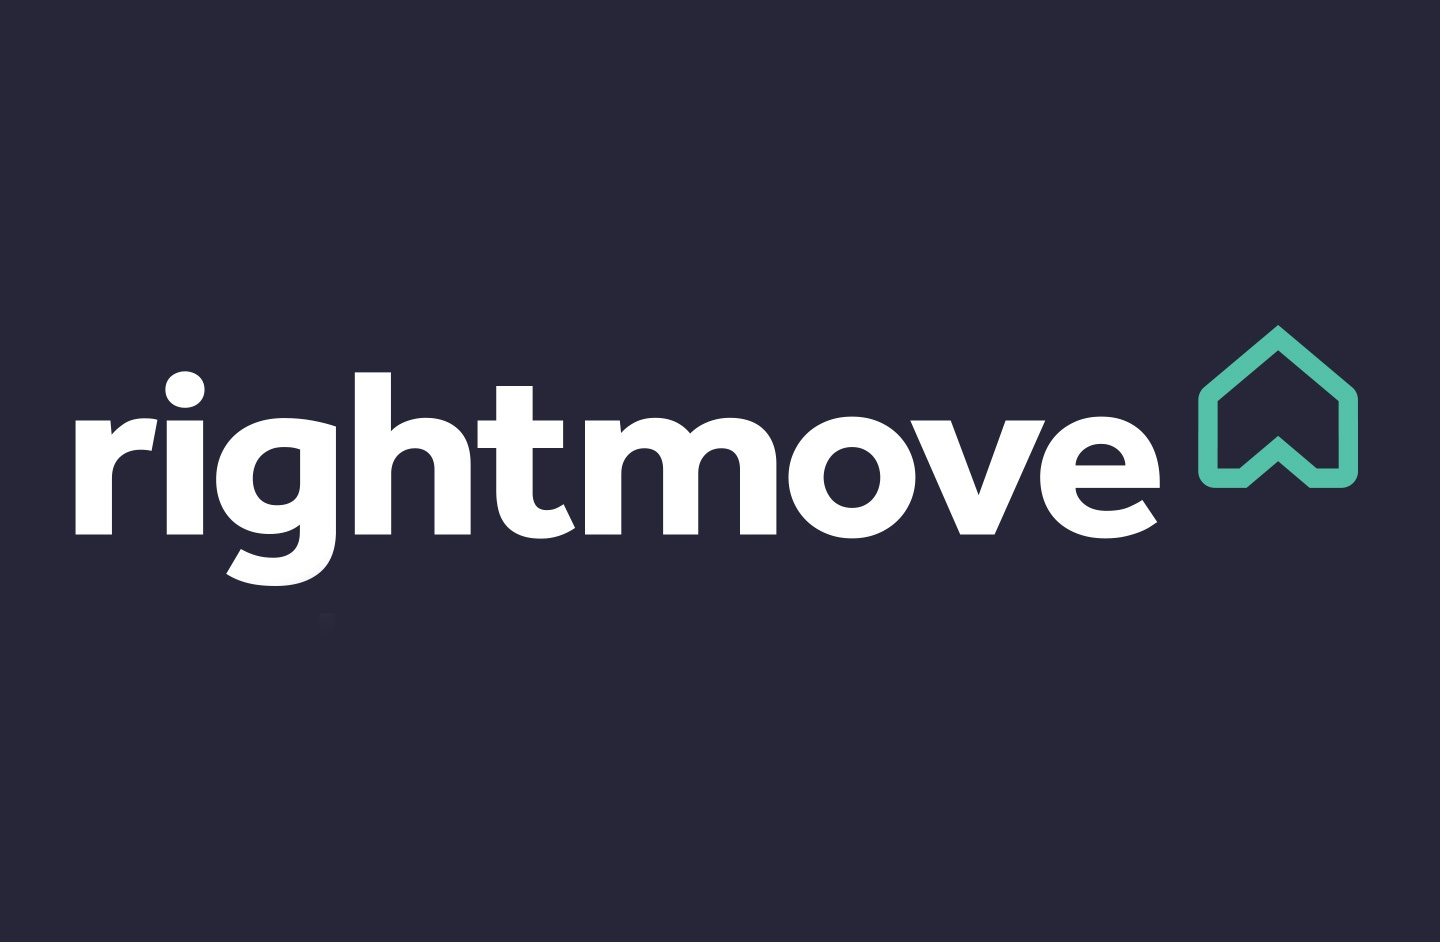 upad_How do you get your property listing correctly featured on Rightmove_1440.jpg